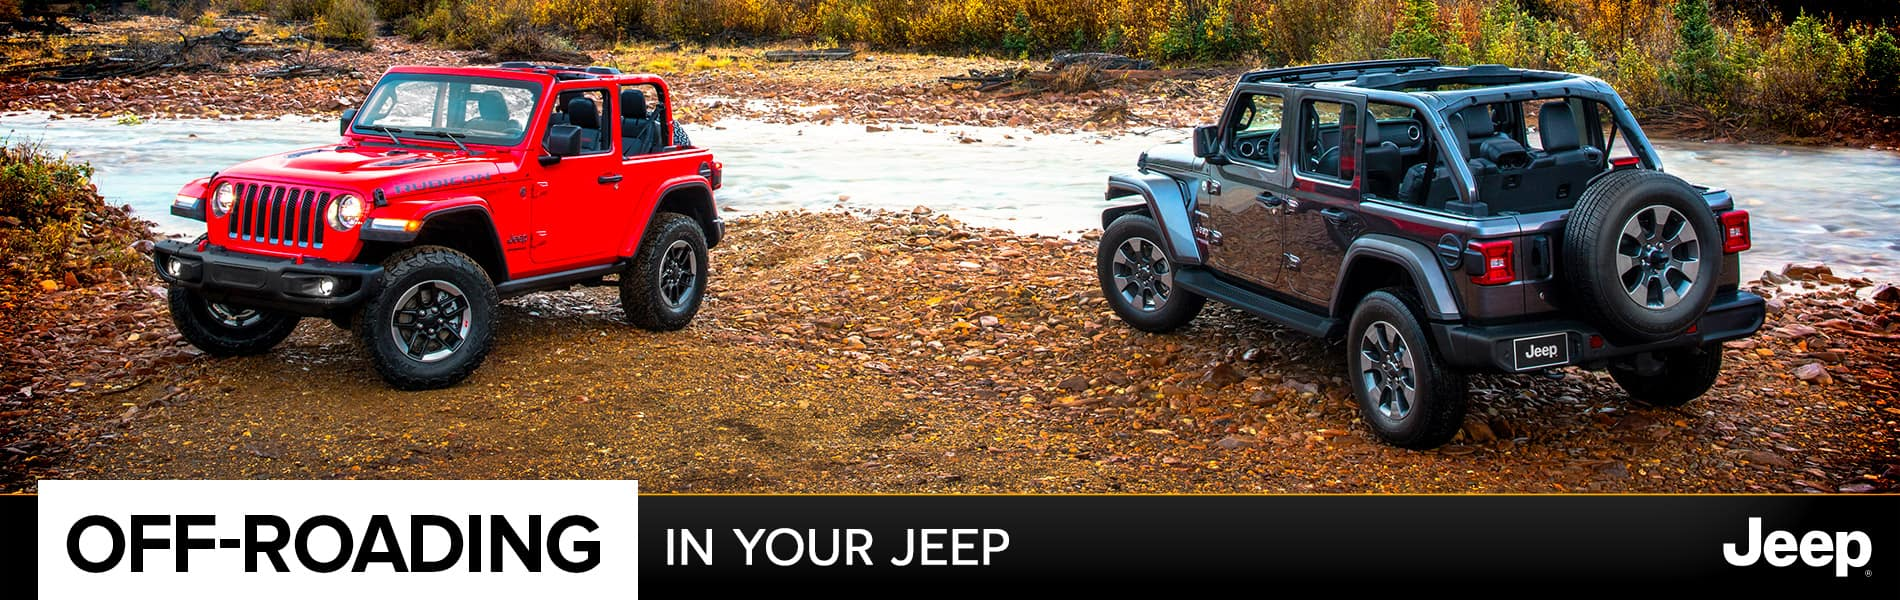 Driving Off-Road In Your Jeep® Vehicle | Decatur, IN